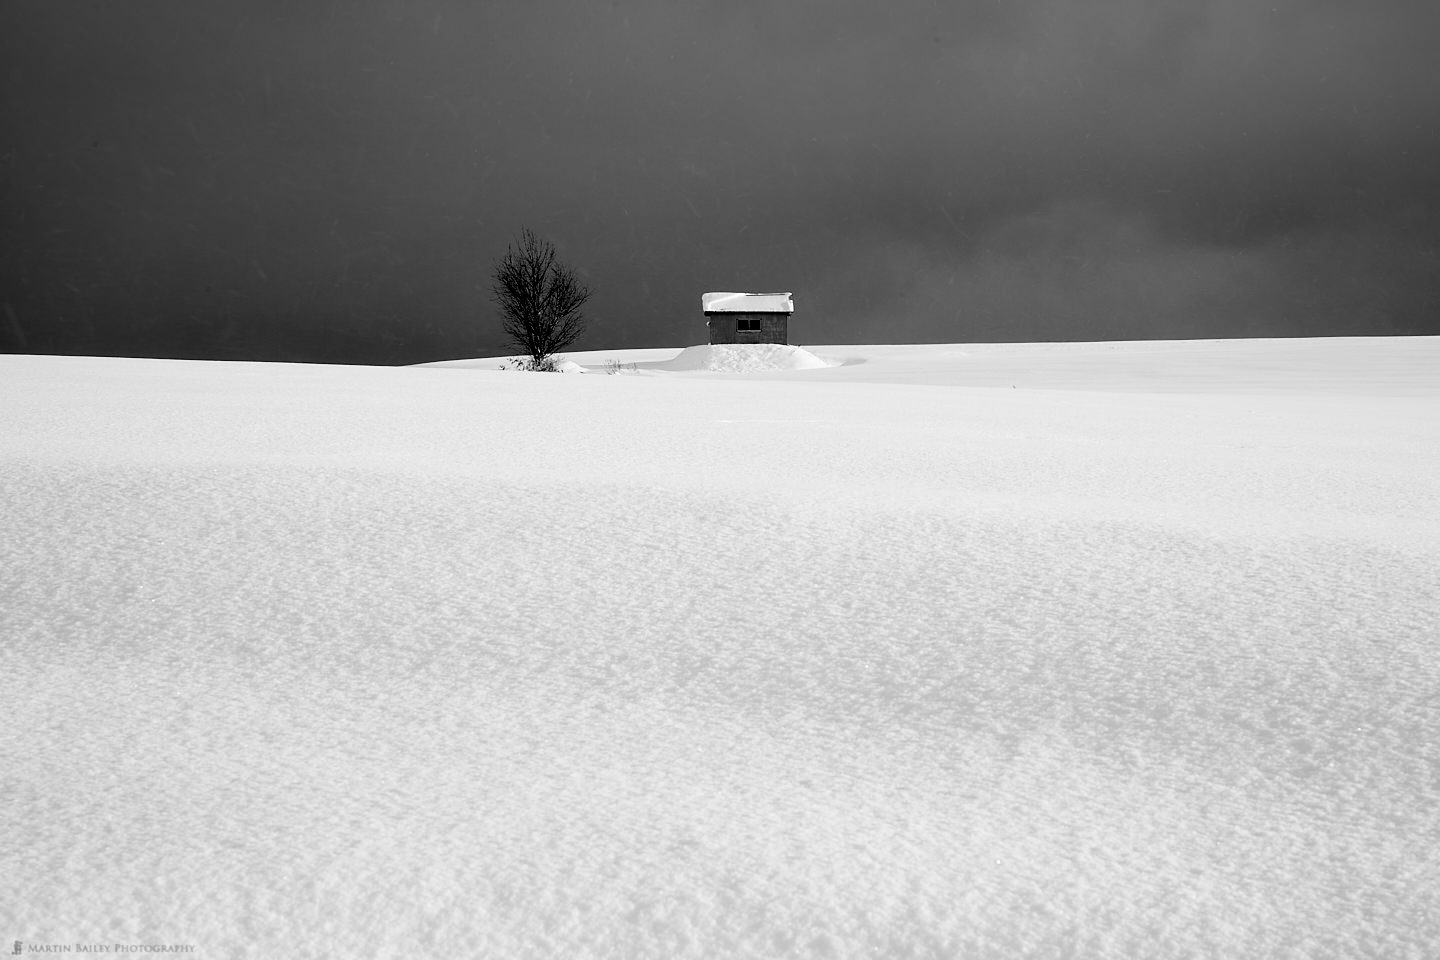 Hut and Tree on Hill